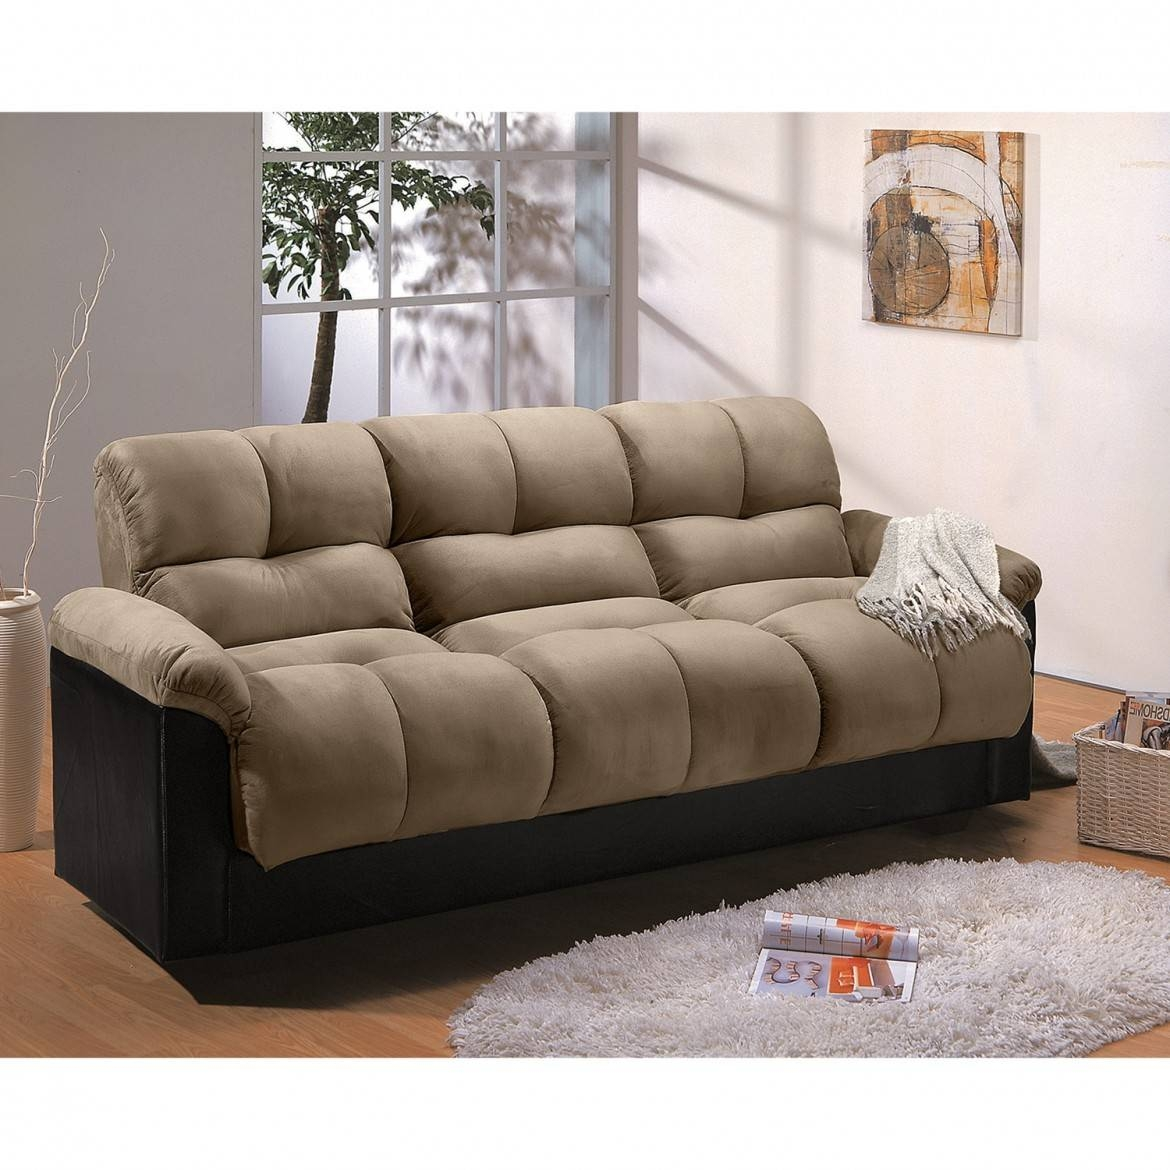 Nice Futon Sofa Bed | Roselawnlutheran Pertaining To Cool Sofa Beds (View 21 of 30)